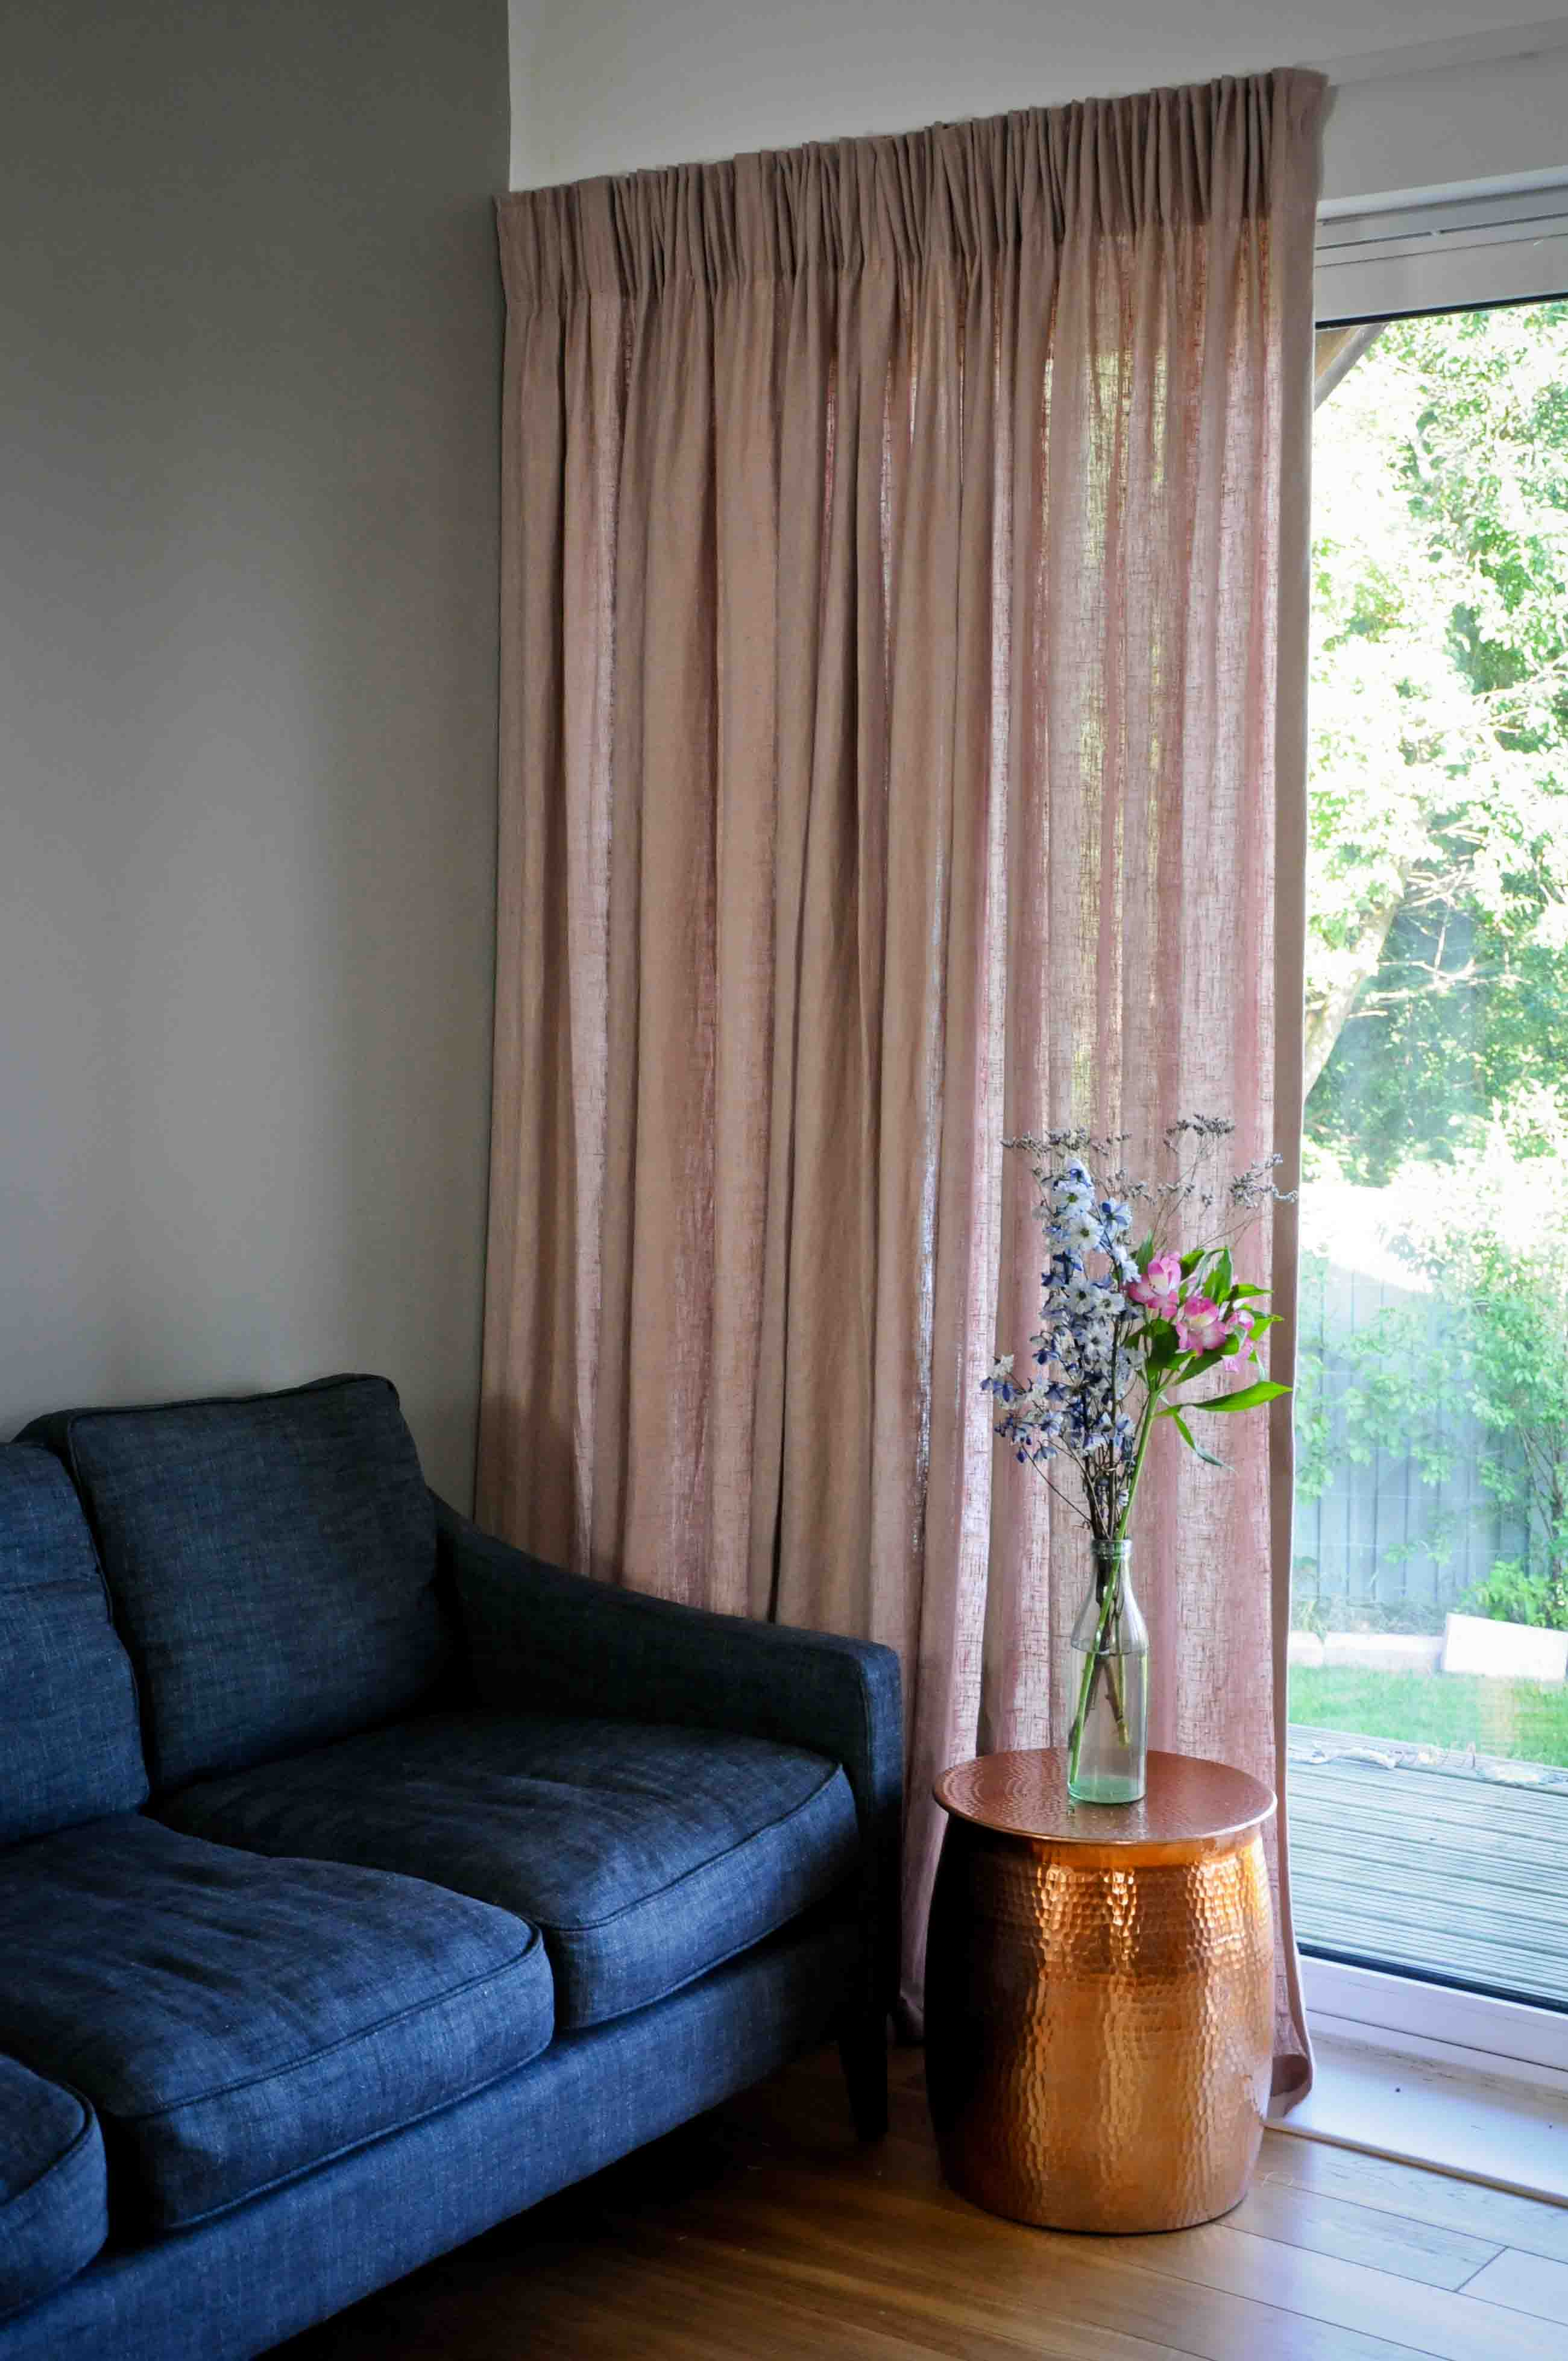 essential grey patio guide bg habitat to curtain buy click uk curtains here blinds buying